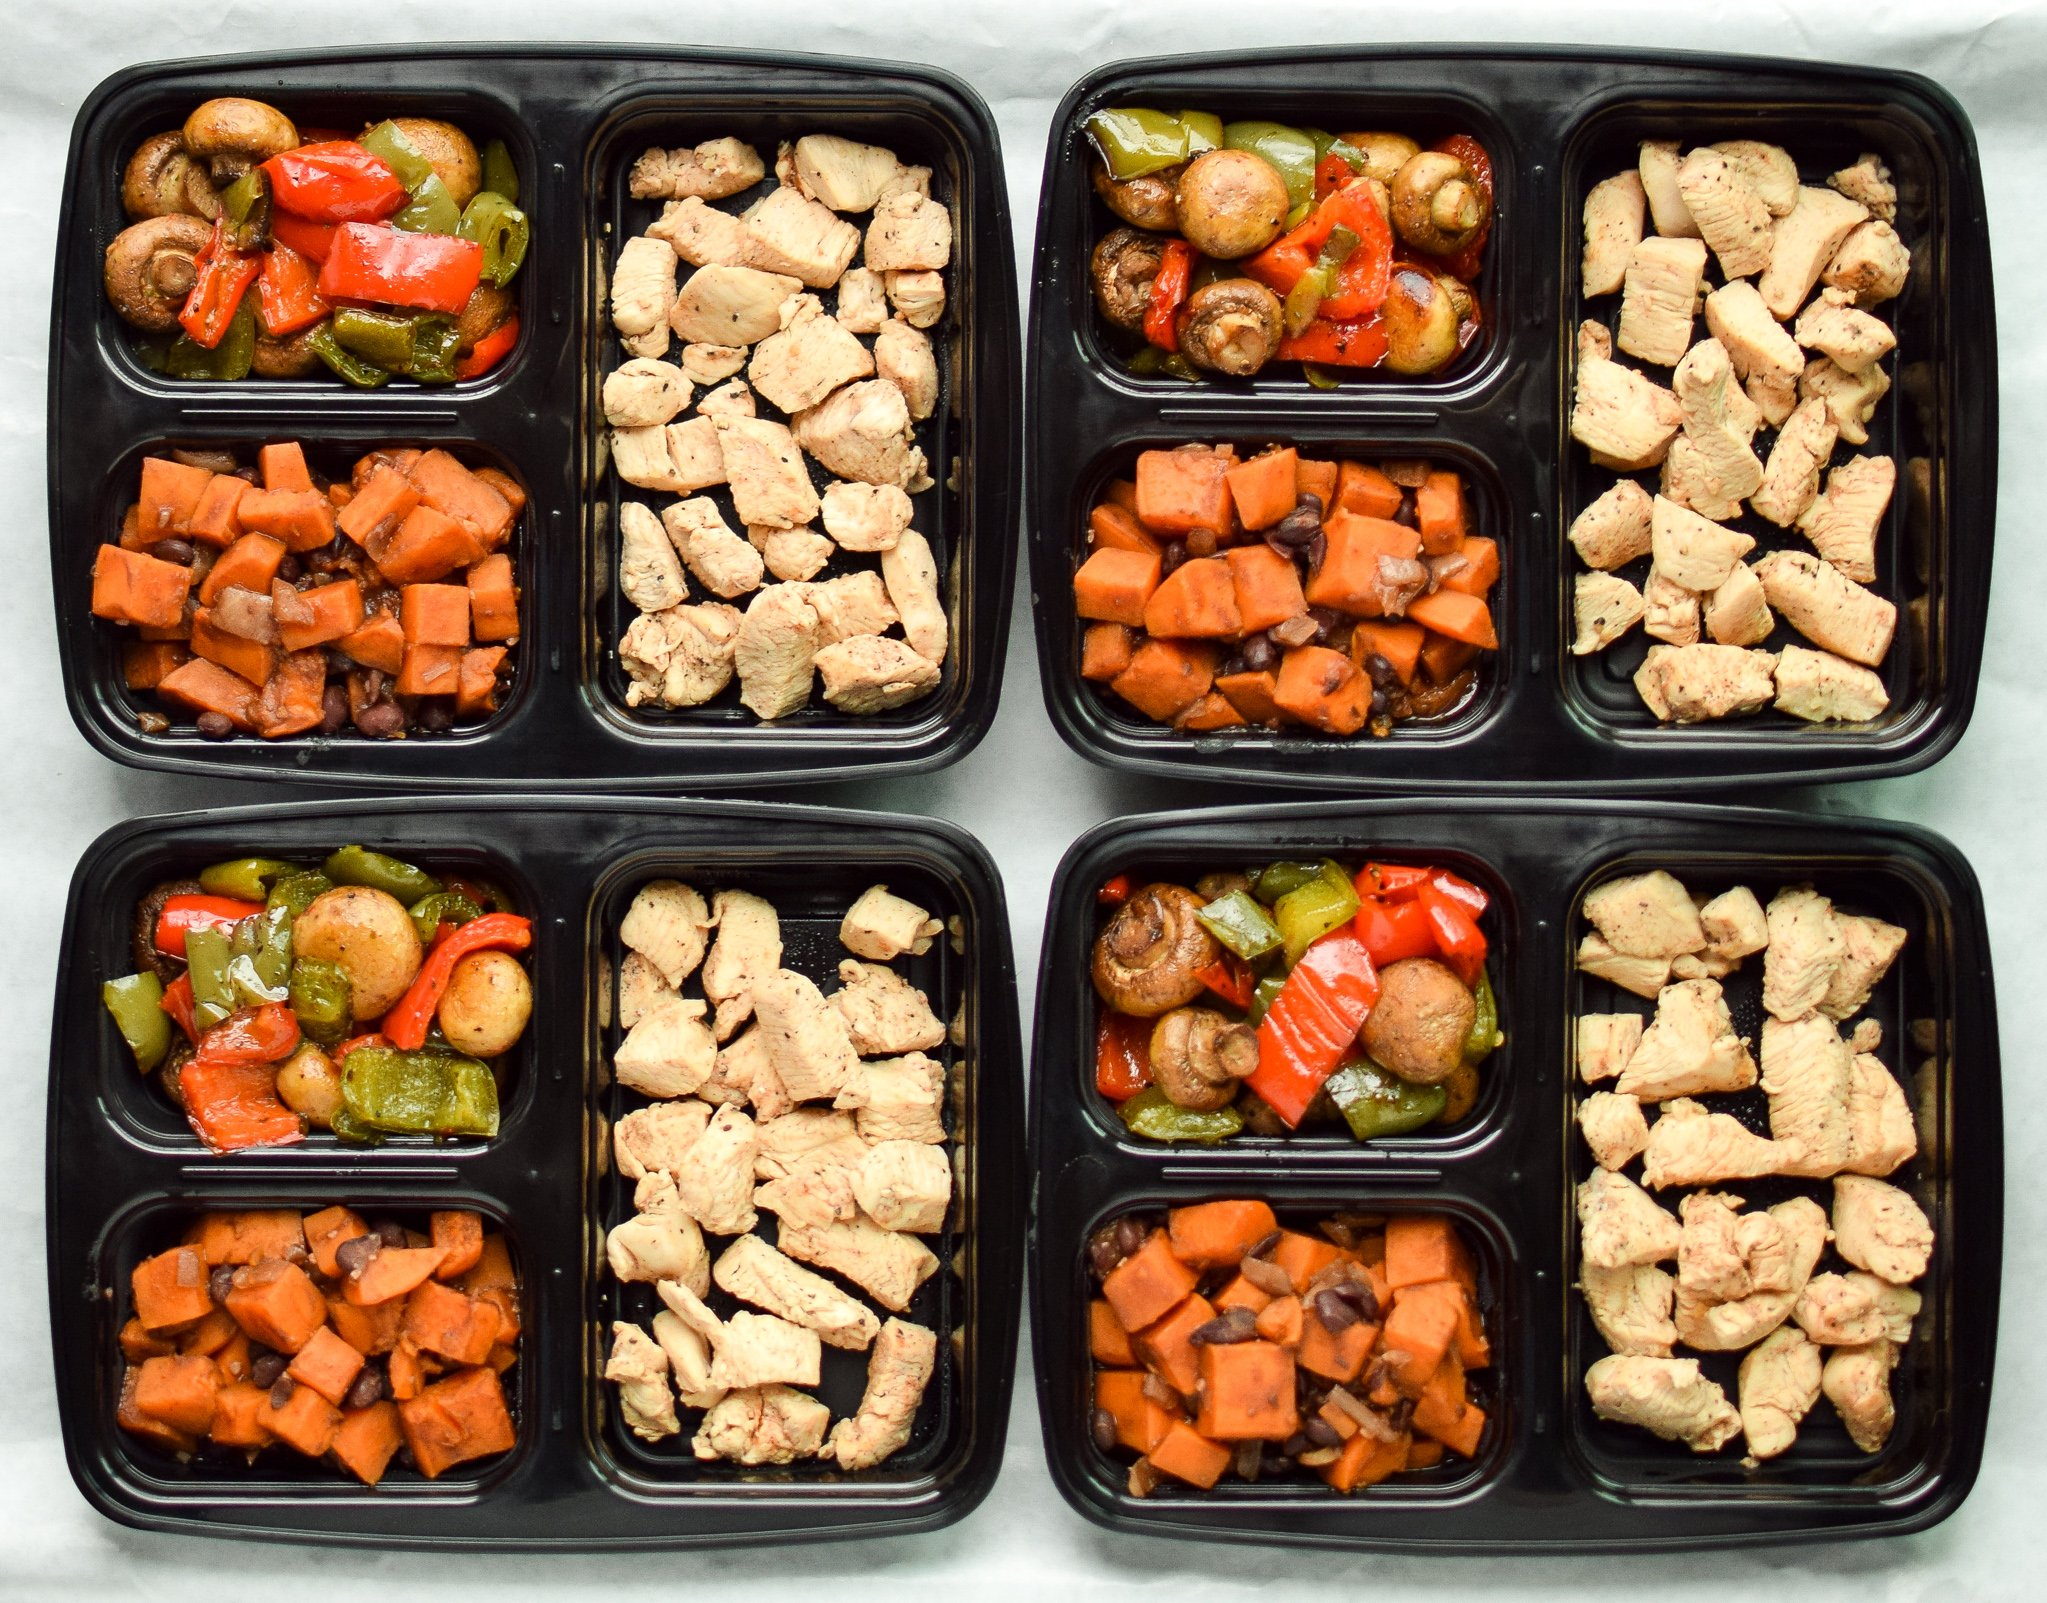 Sunday Meal Prep for November 27th, 2016 - Sunday Meal Prep Steps, shopping list, macro counts and more! - ProjectMealPlan.com